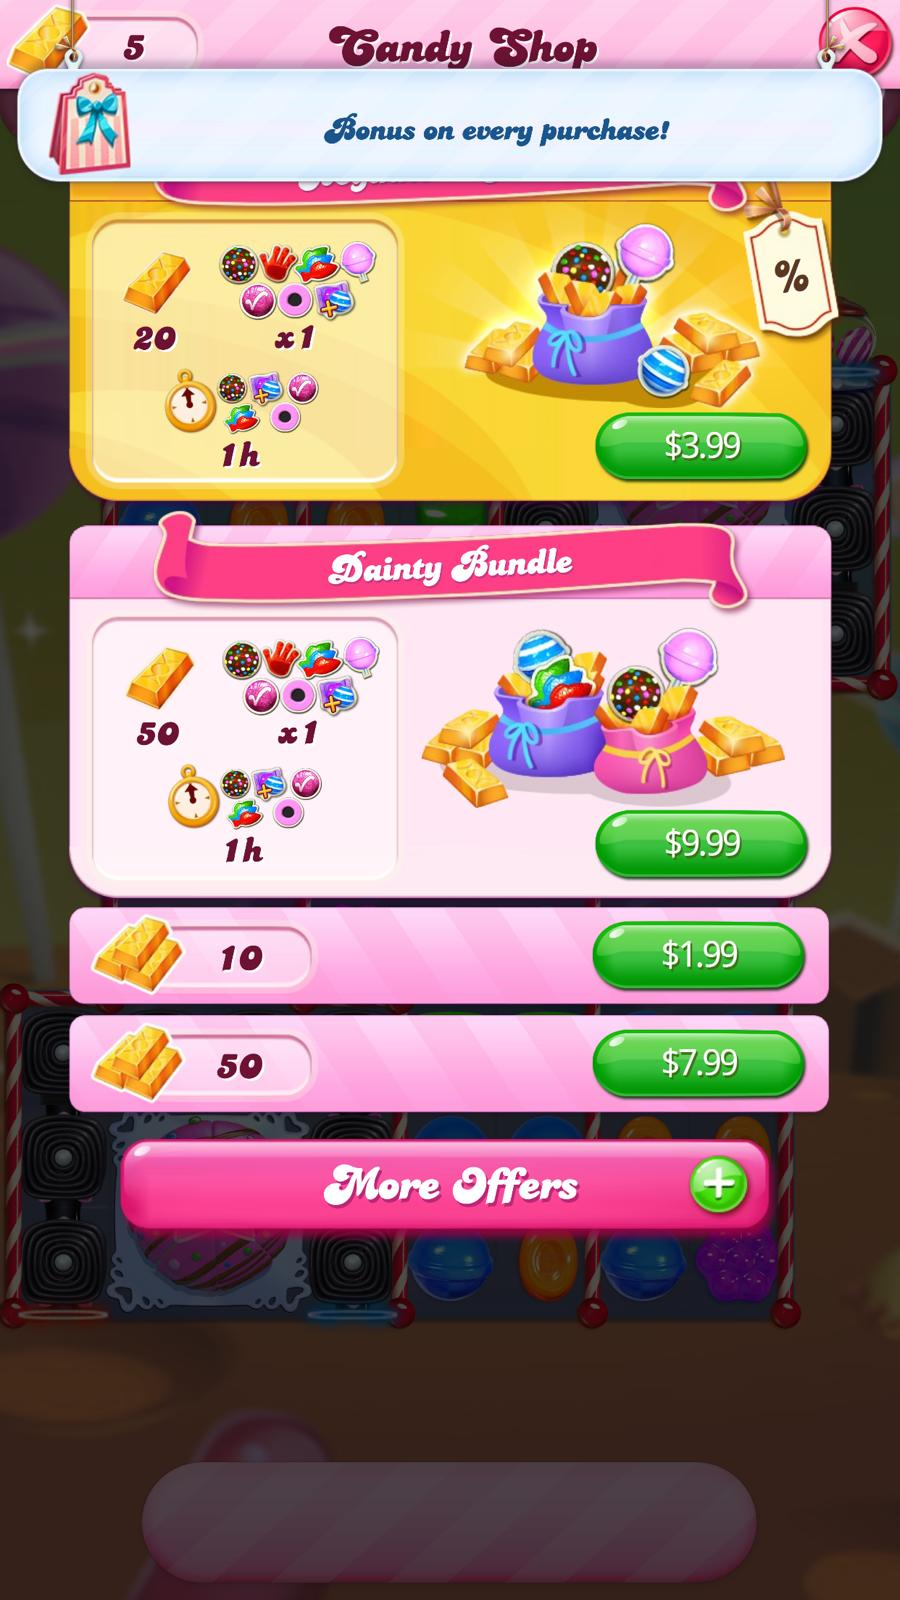 A screenshot of in-app purchase options for Candy Crush Saga